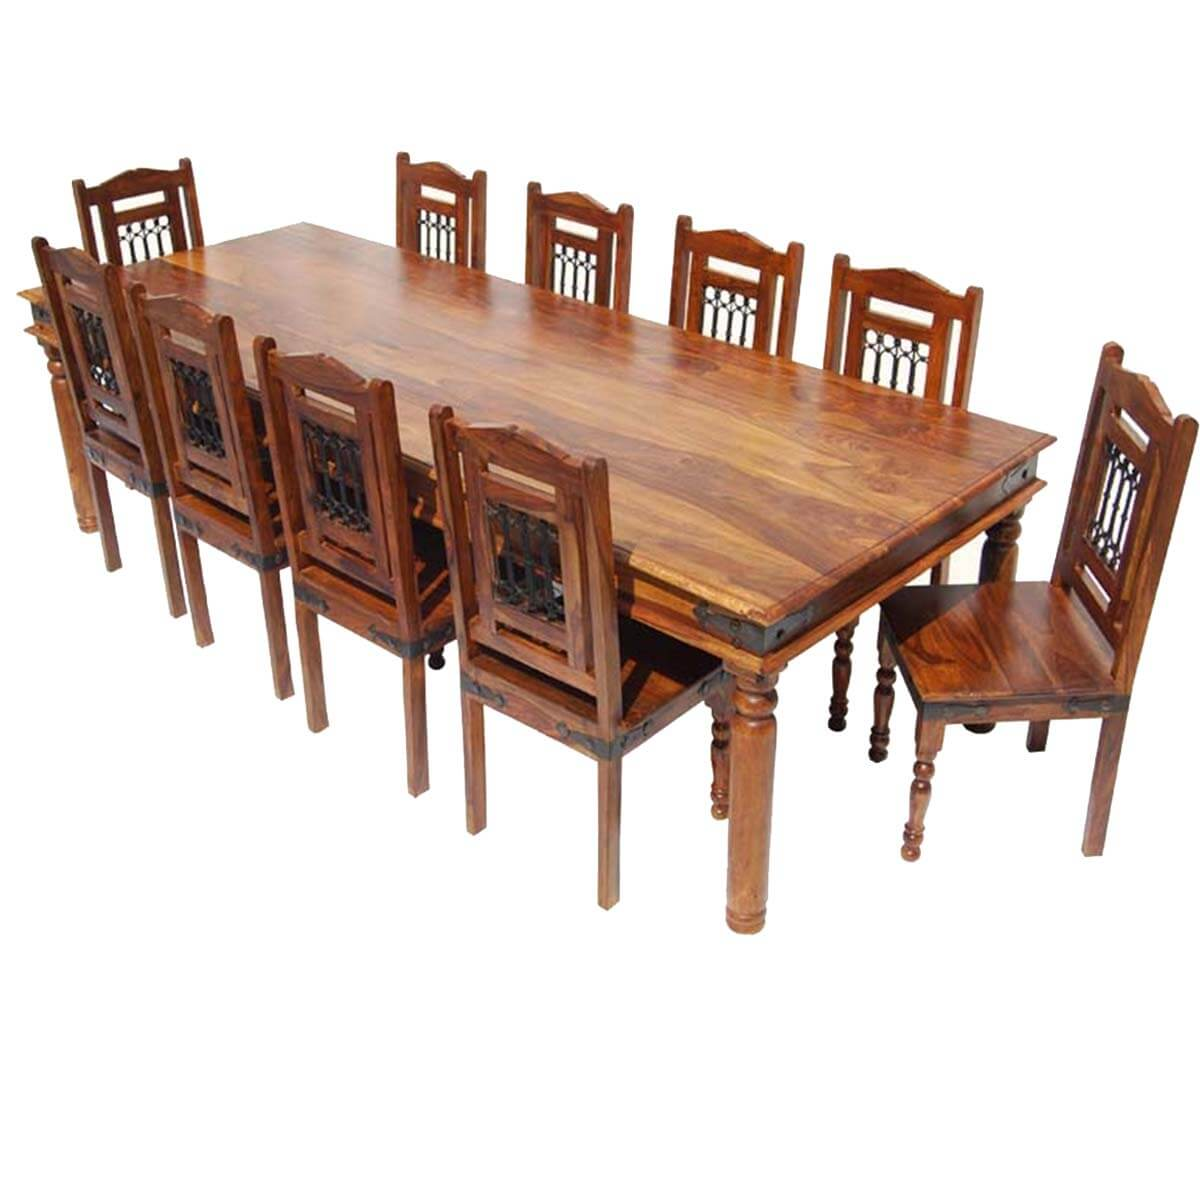 Rustic Dining Room Table Set: Solid Wood Large Rustic Dining Room Table Chair Sideboard Set